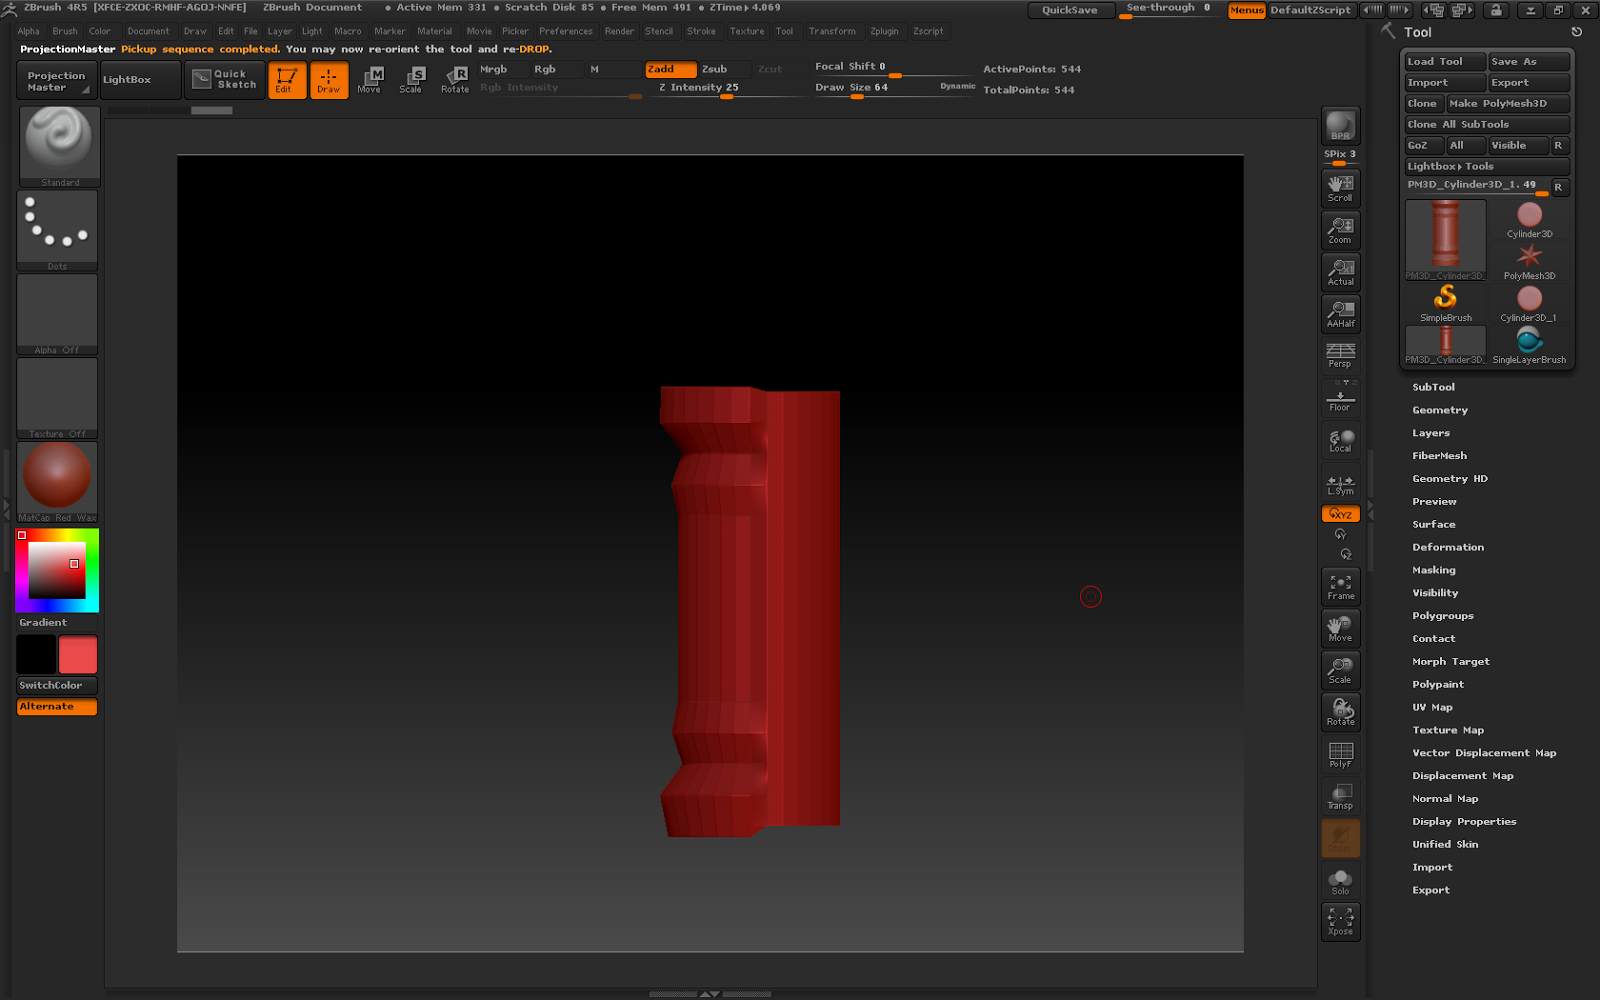 zbrush 4r5 crack patch